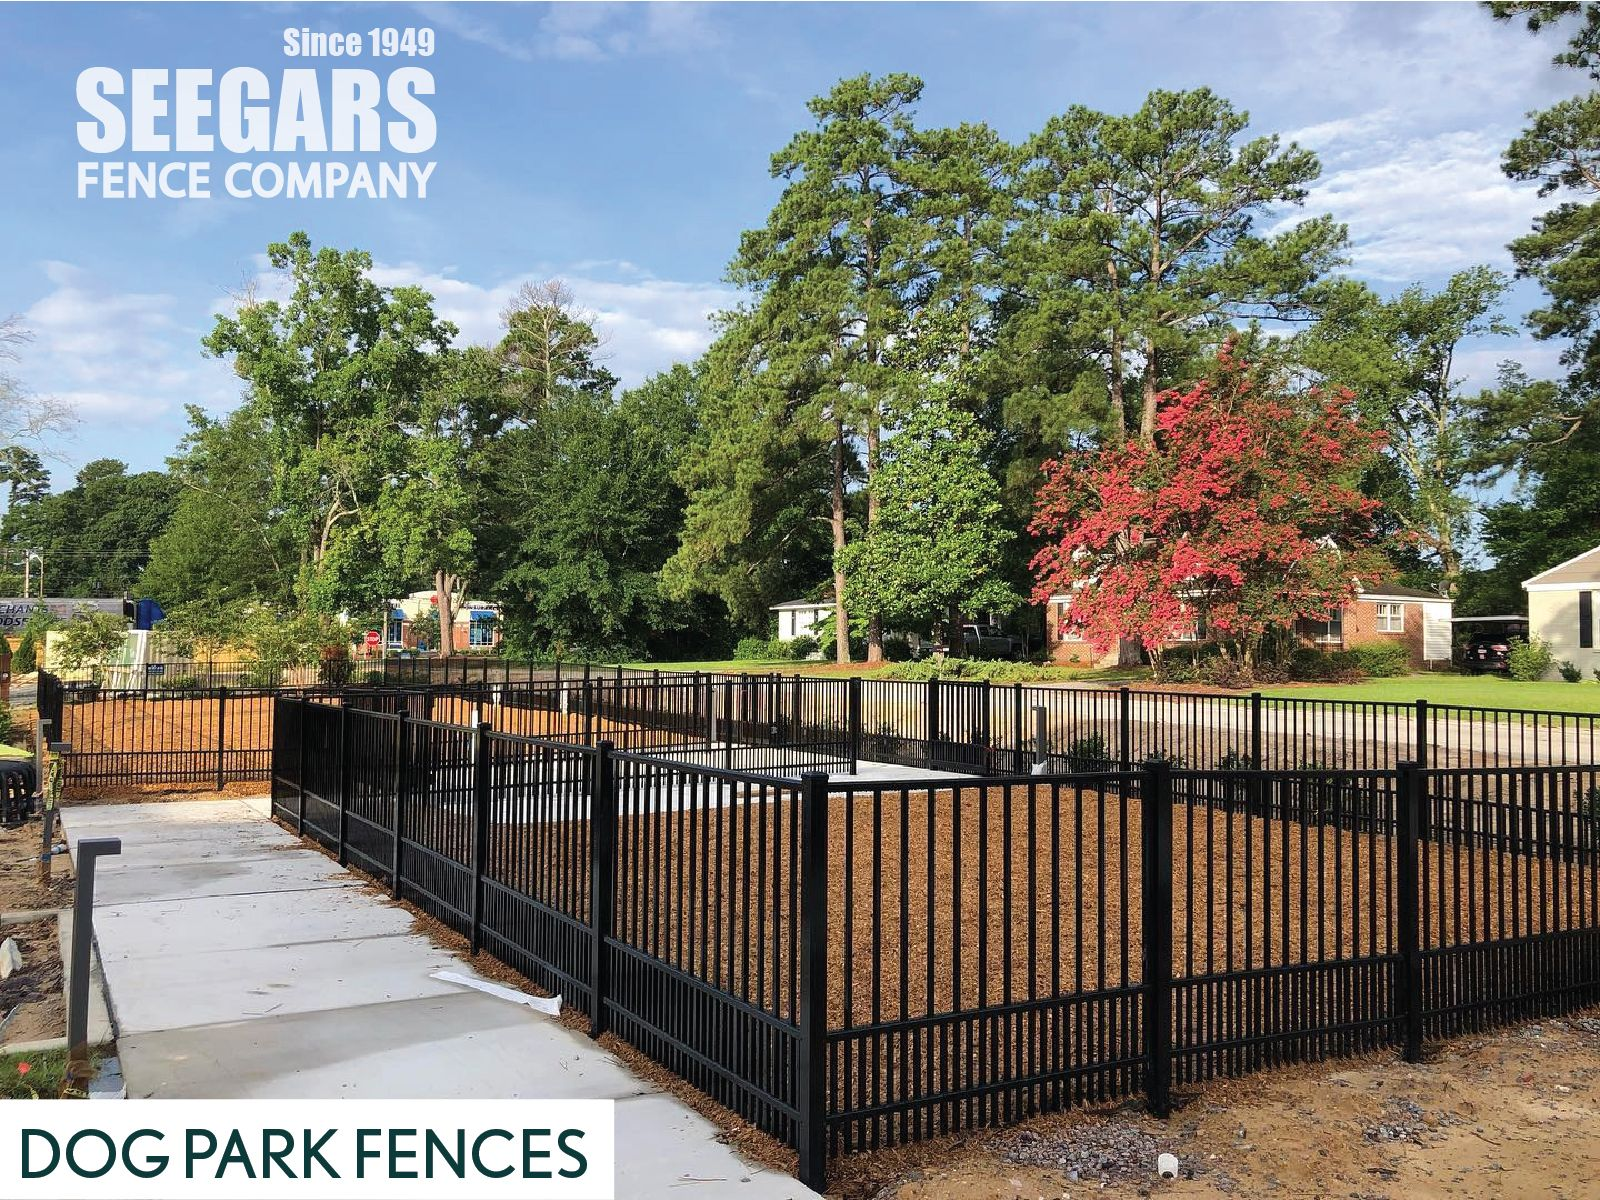 Dog Park Fences By Seegars Fence Company In 2020 Aluminum Fence Fence Fencing Companies